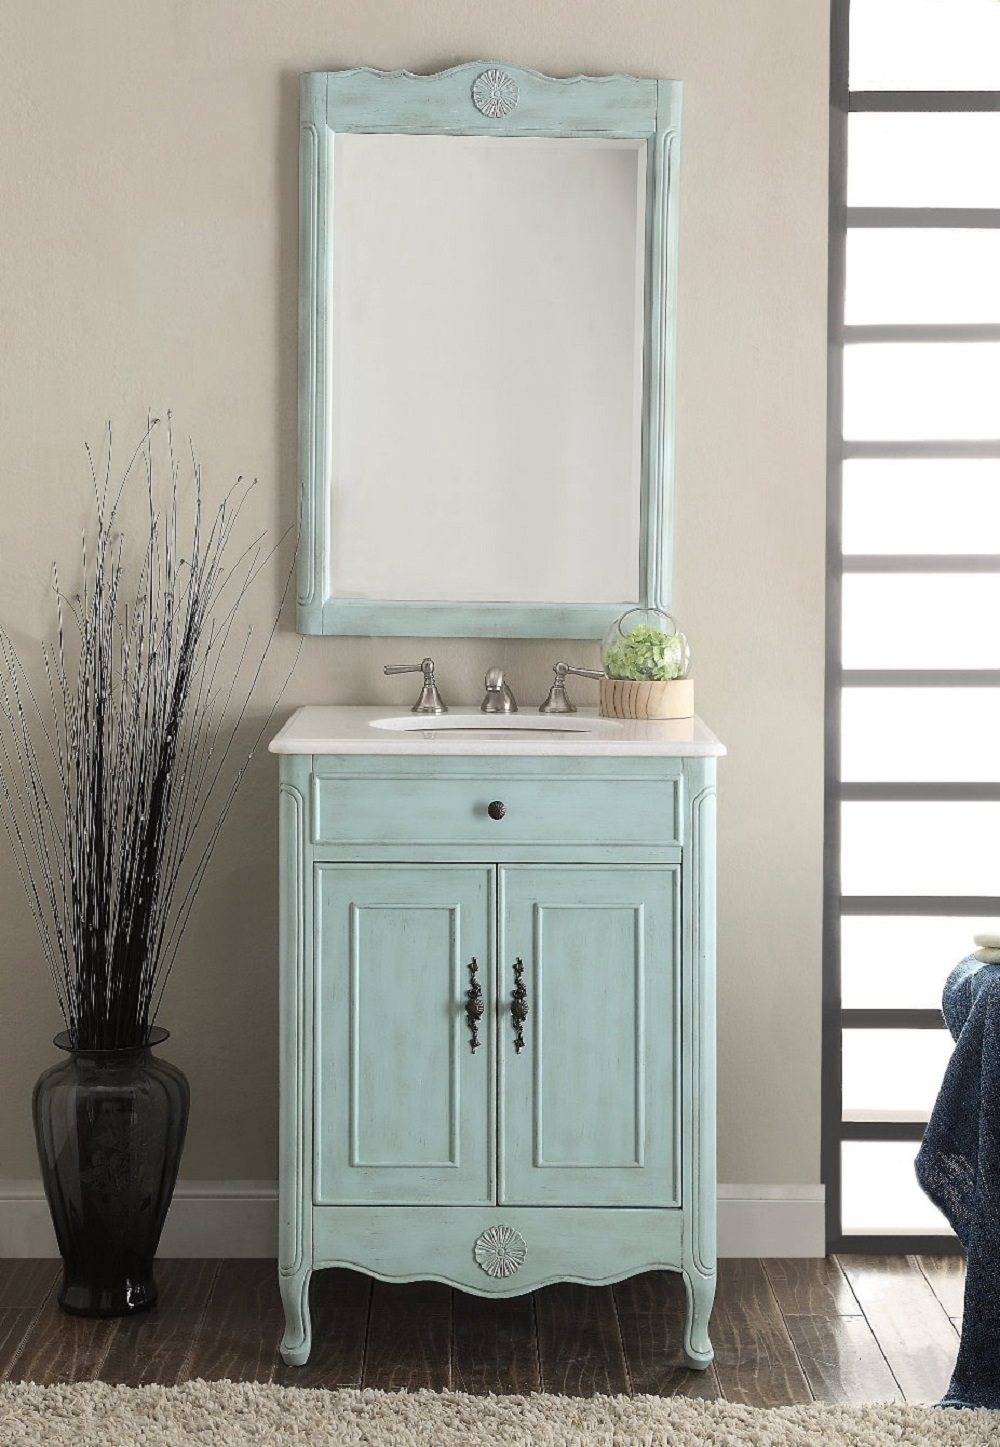 26 inch Blue Bathroom Vanity with Mirror Crystall White Marble Top ...